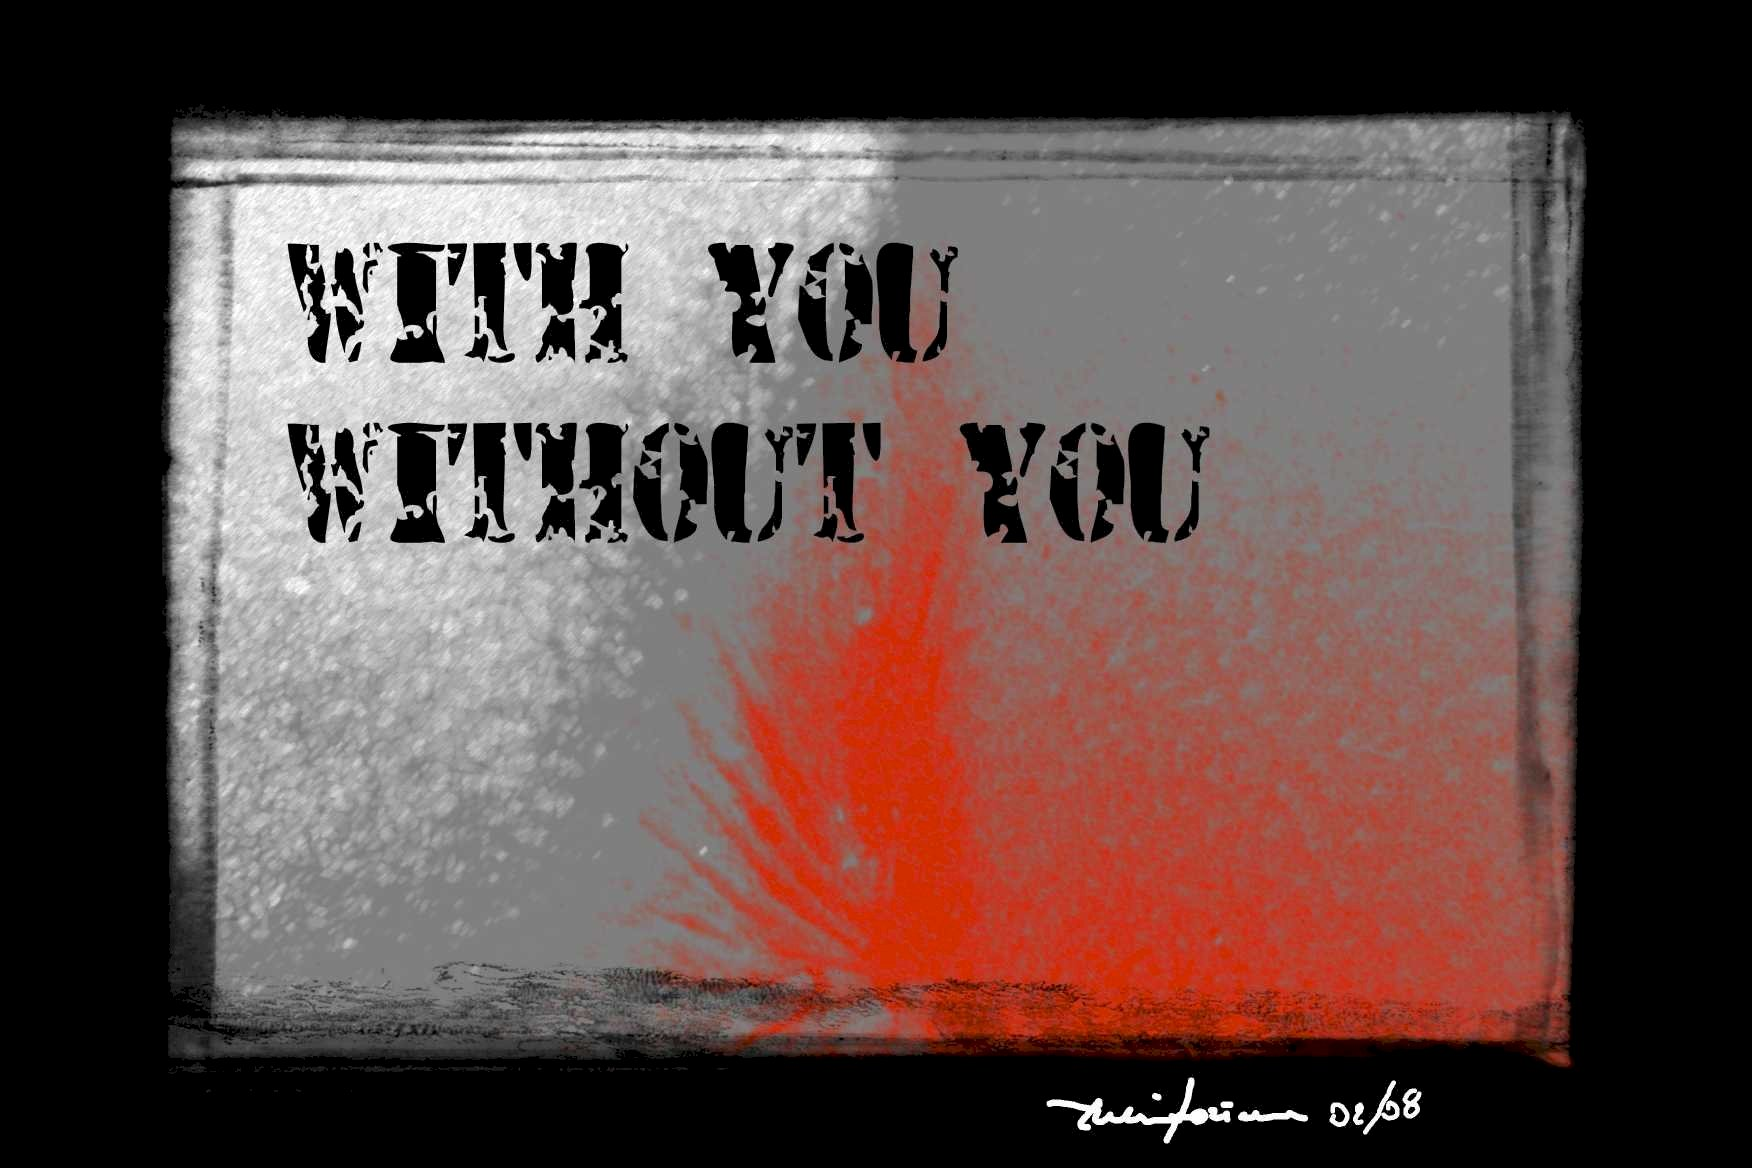 Whith or without you